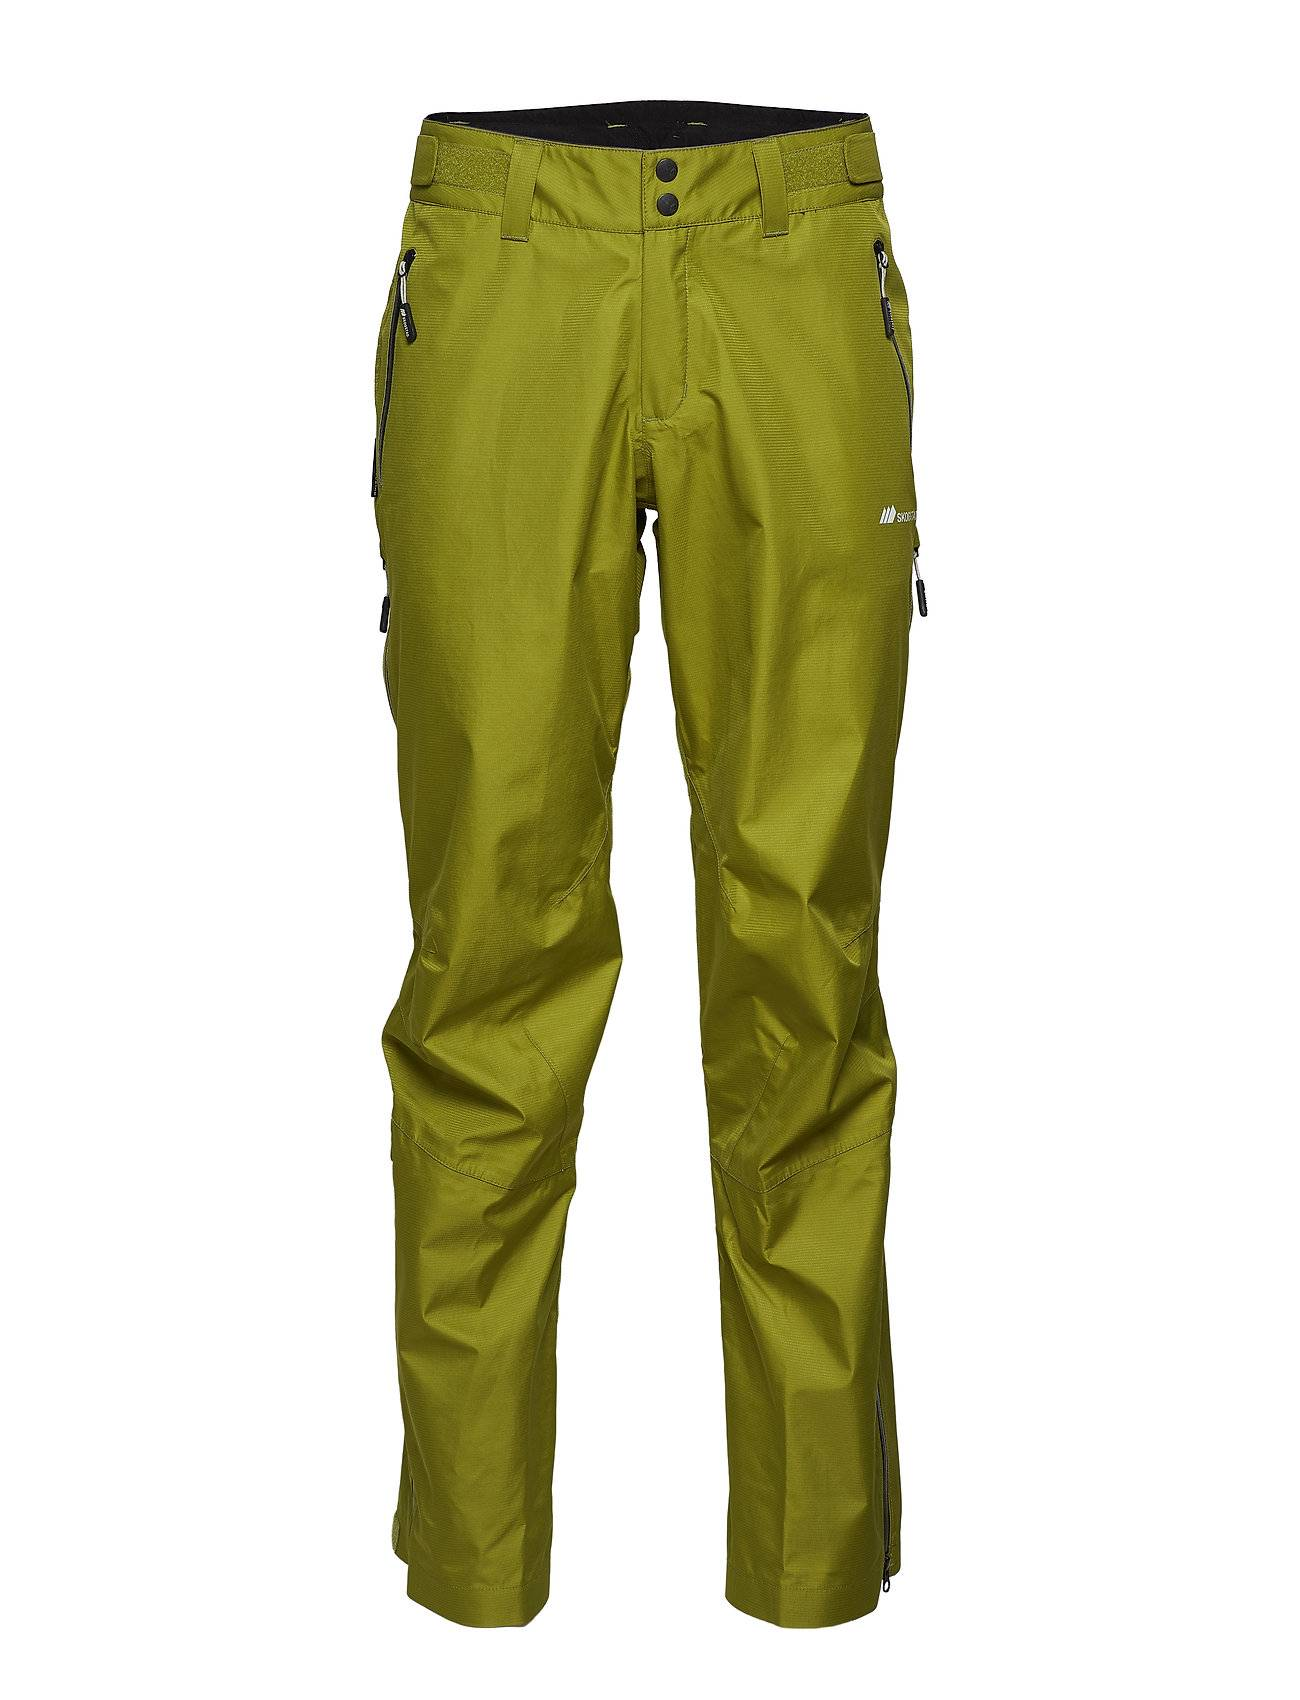 Skogstad Horgi 3-Layer Technical Shell Trouser Sport Pants Vihreä